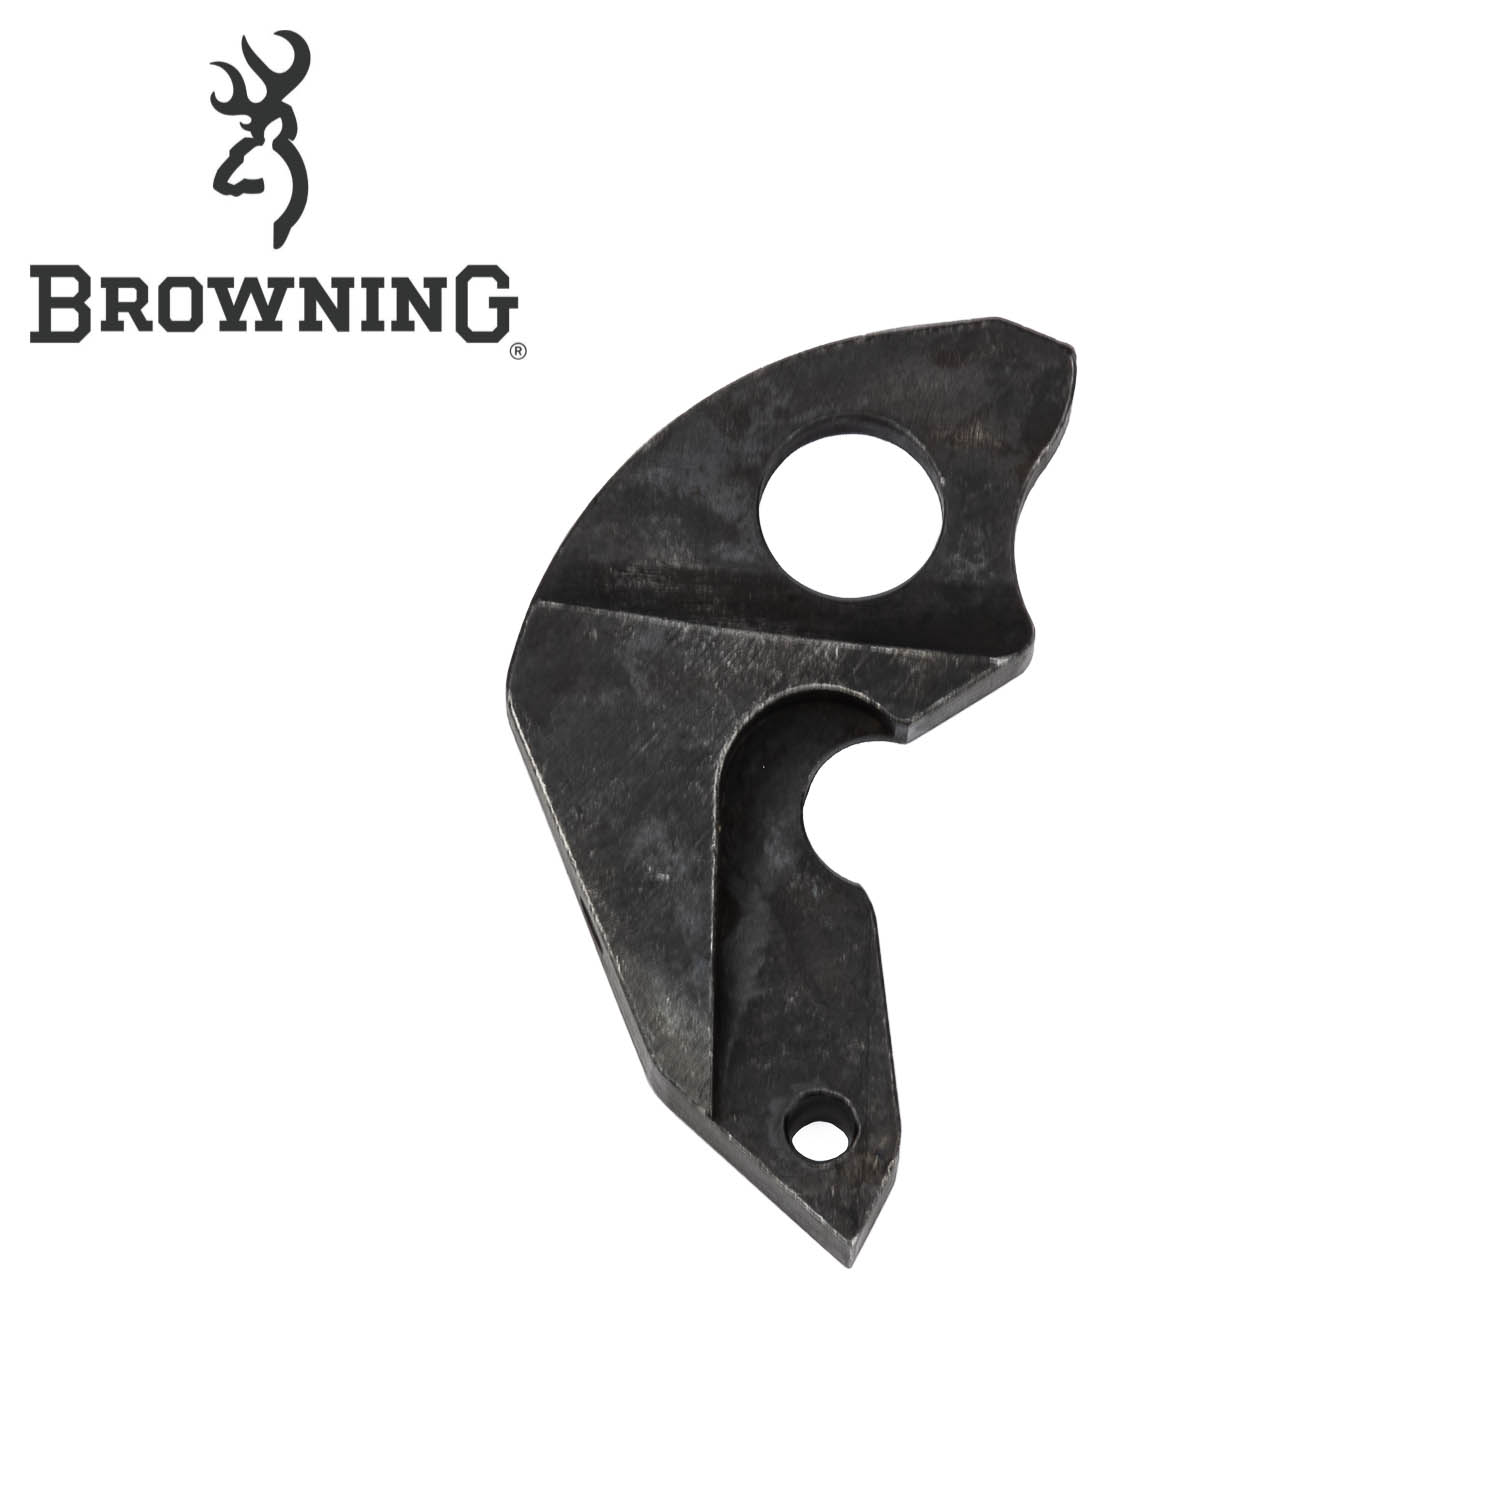 Browning Superposed 12ga  Left Ejector Hammer: Midwest Gun Works